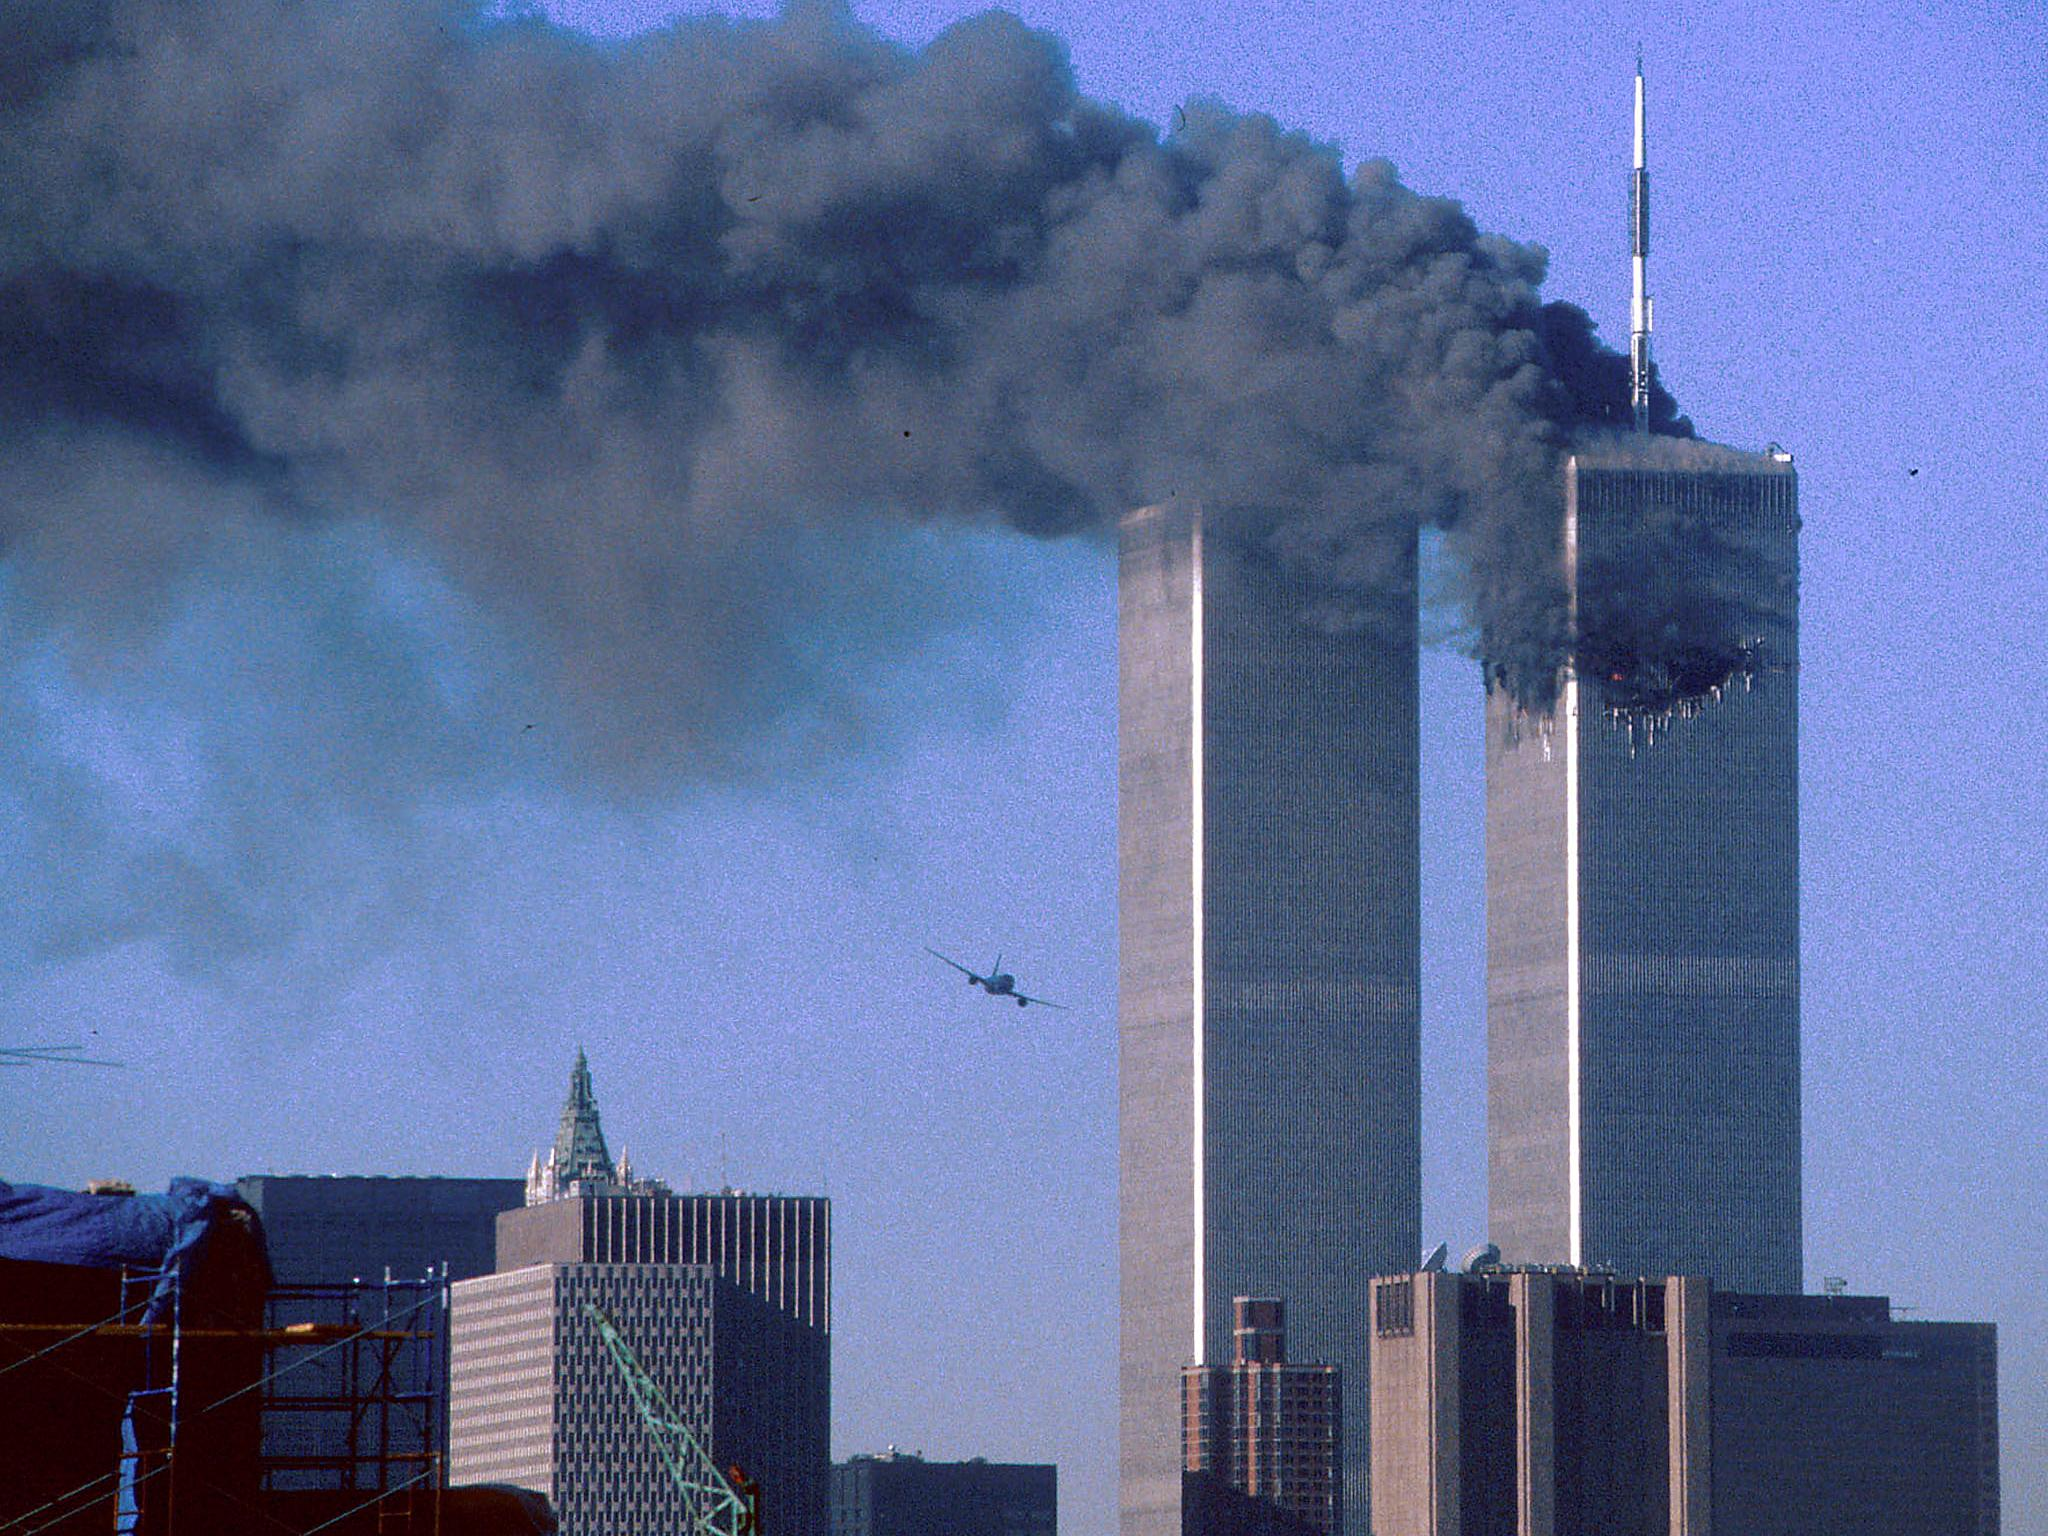 9/11 attacks: Air traffic controllers reveal horror of day in book  detailing graphic accounts | The Independent